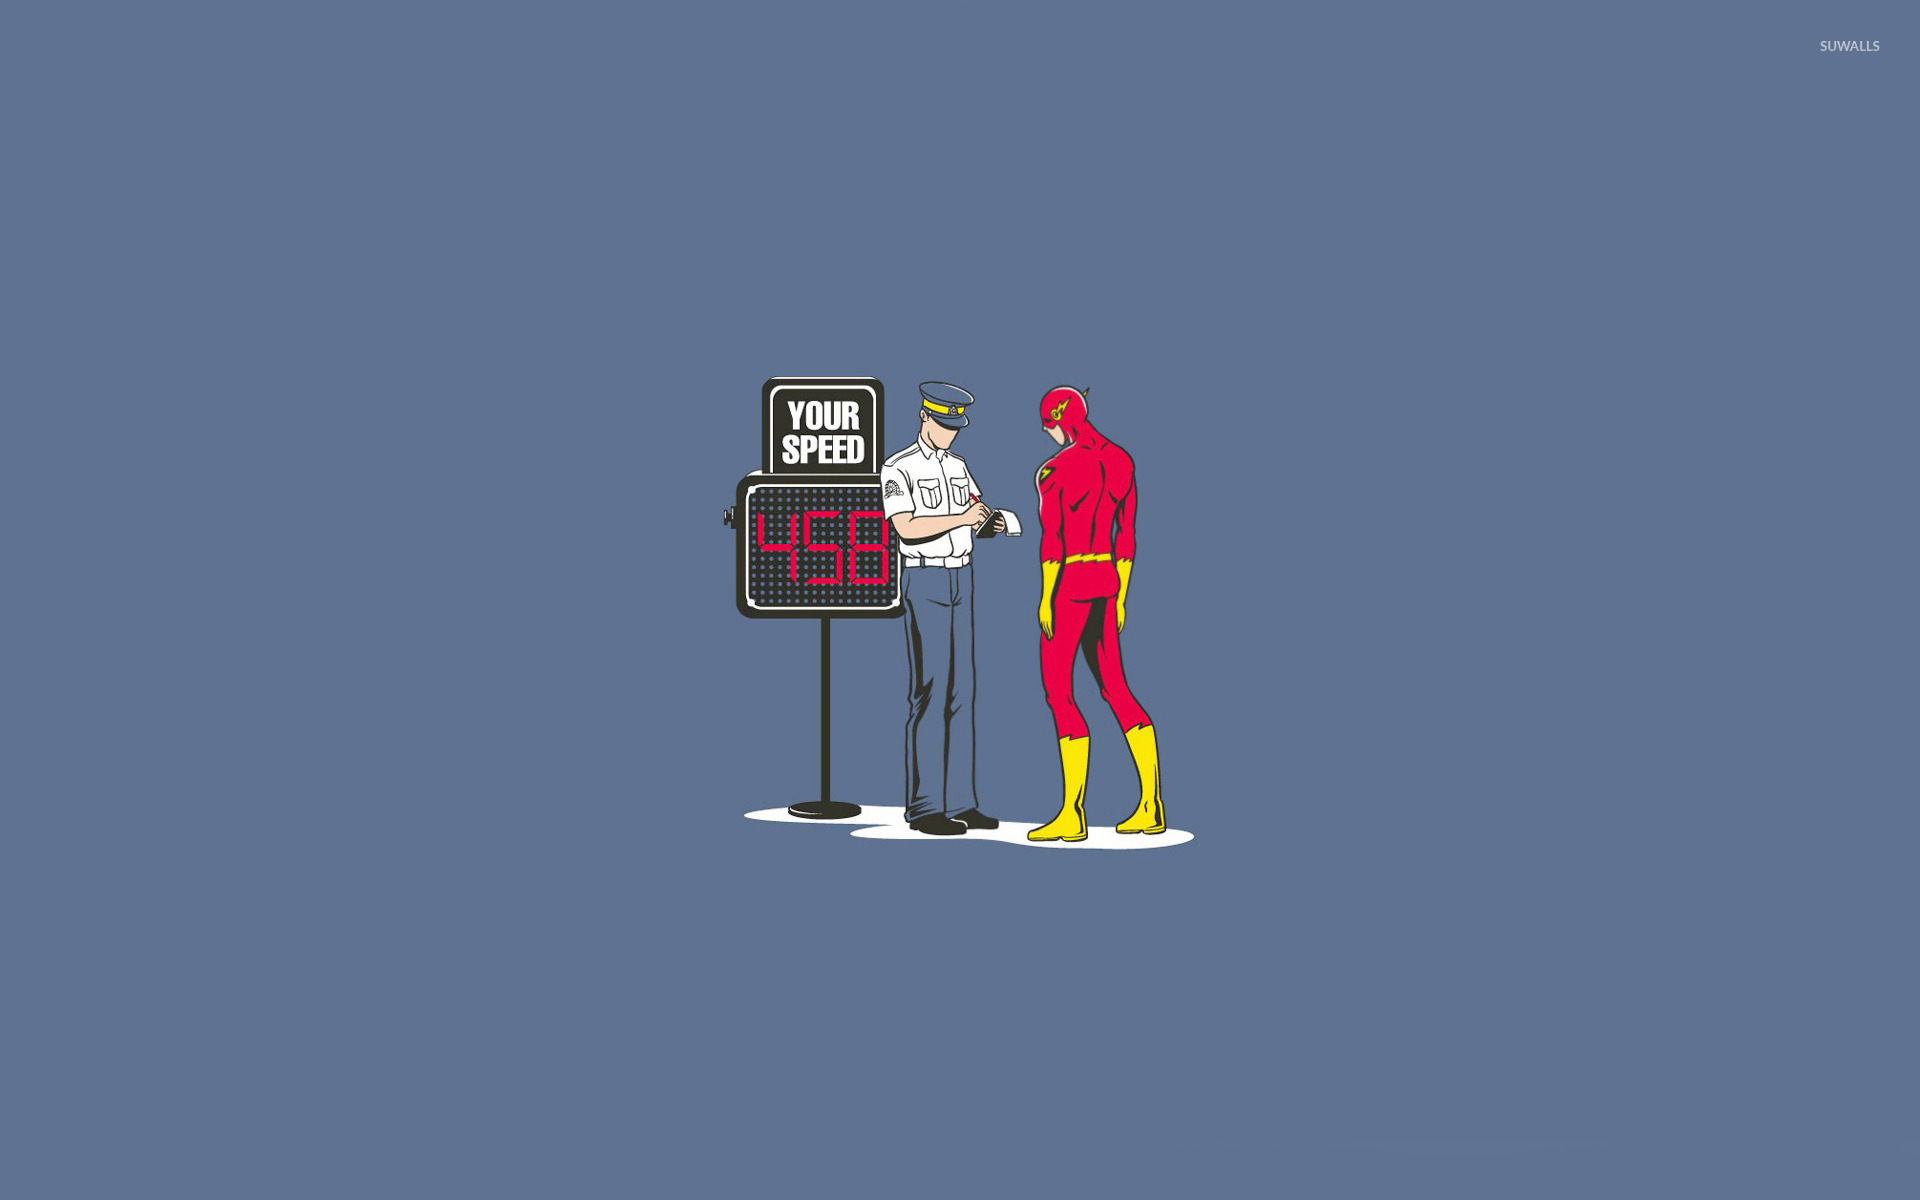 Flash getting a speeding ticket wallpaper - Funny wallpapers